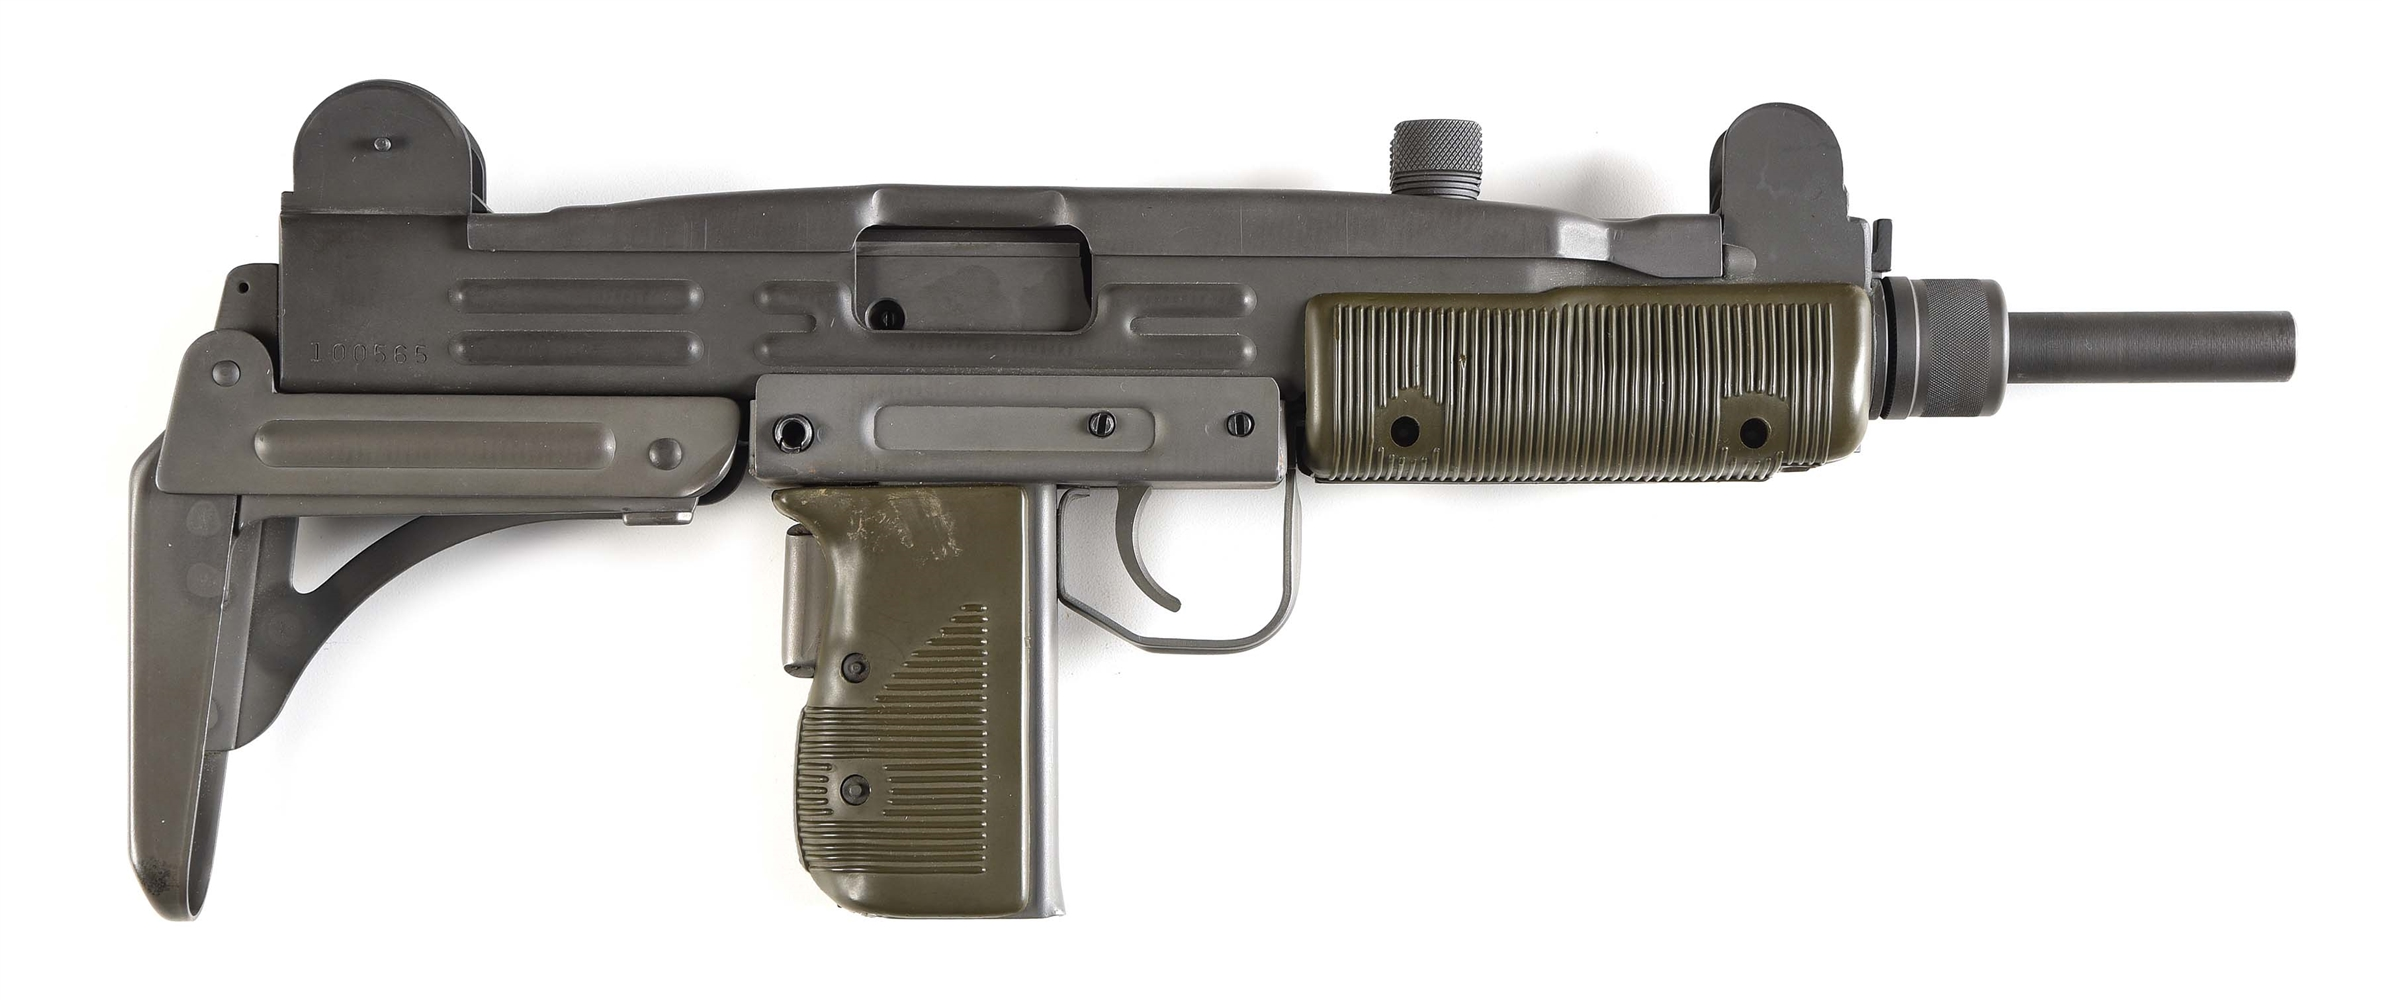 (N) NEAR MINT GROUP INDUSTRIES HR 4332 UZI MACHINE GUN WITH FOLDING STOCK AND .22 CONVERSION KIT (FULLY TRANSFERABLE).